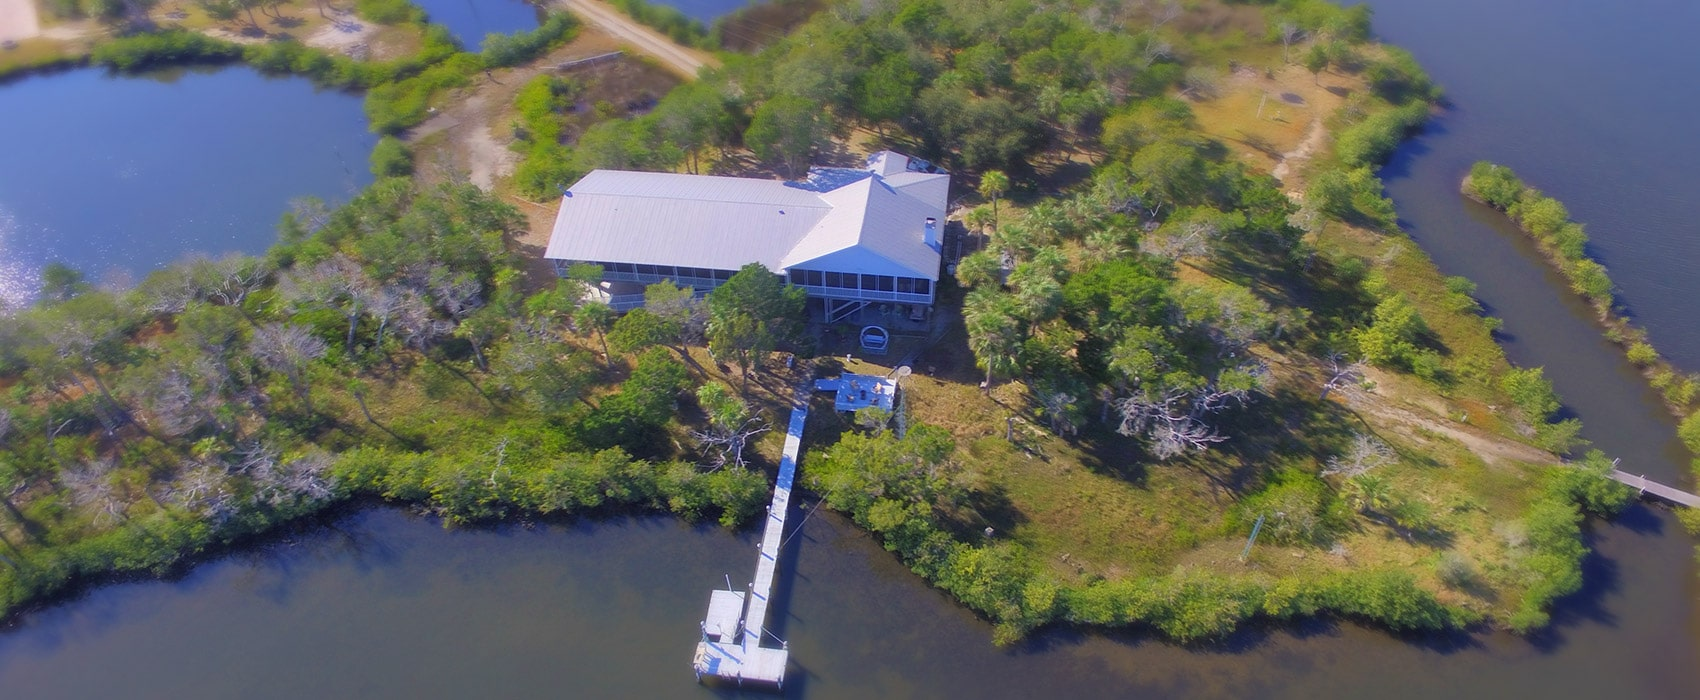 Crystal River Lullaby B&B from sky